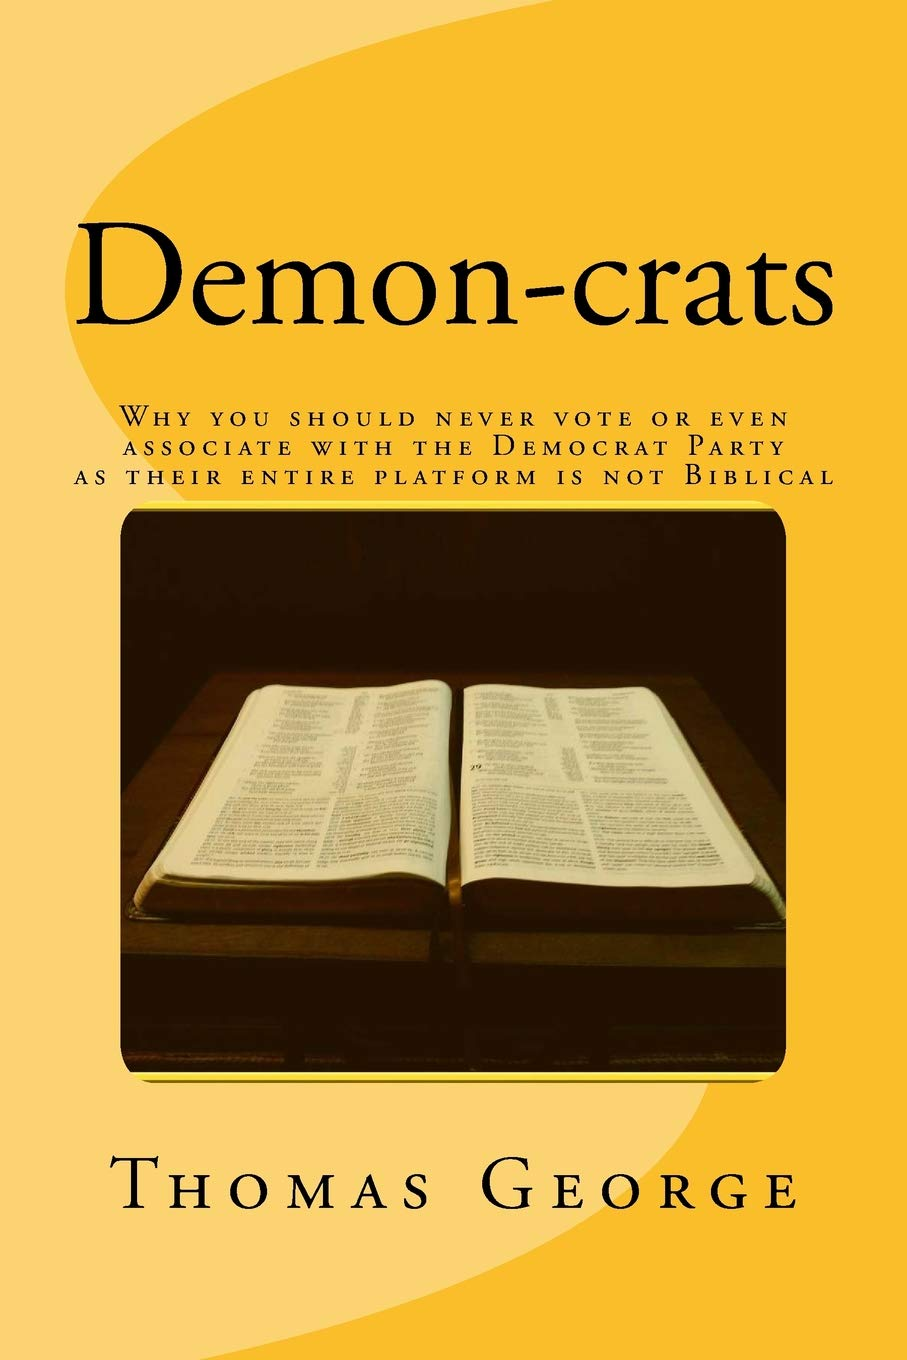 Demon-crats Why you should never vote or even associate with